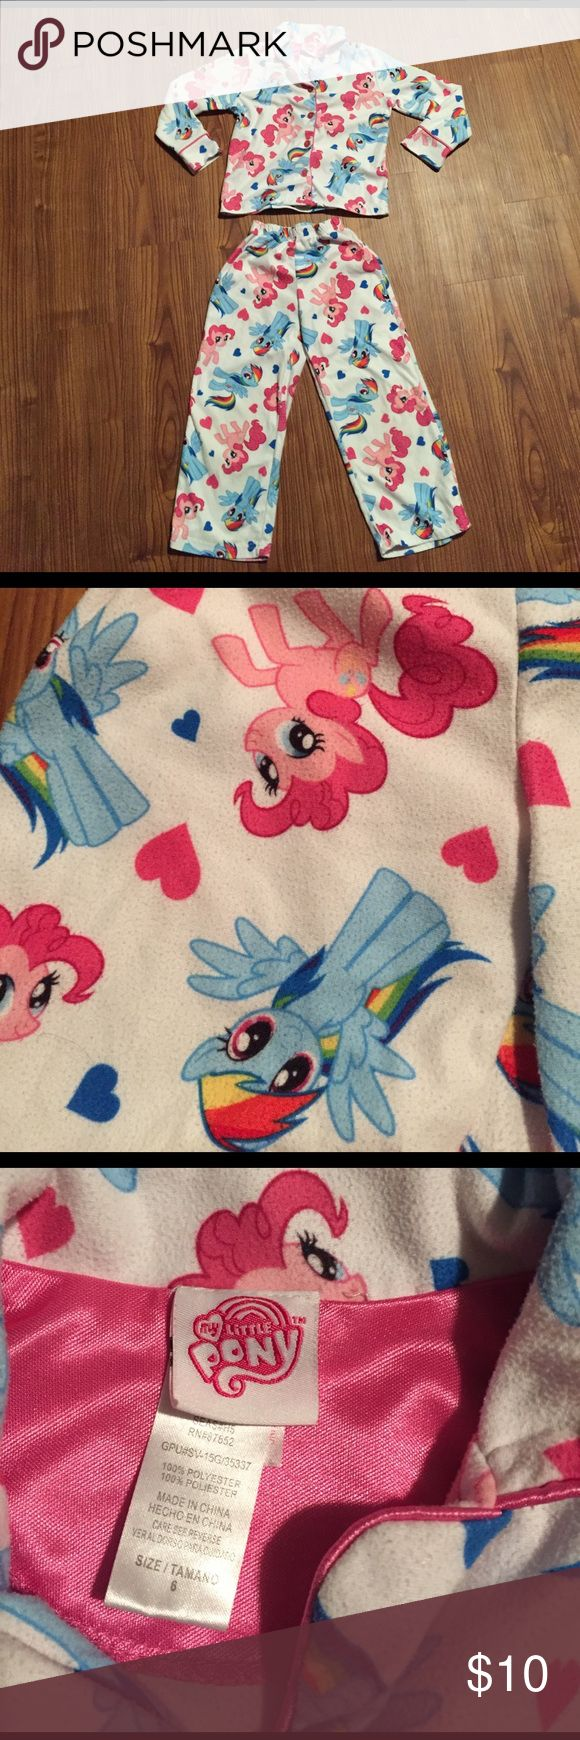 My Little Pony girl's pajamas Gentle used condition. No holes or stains. My Little Pony Pajamas